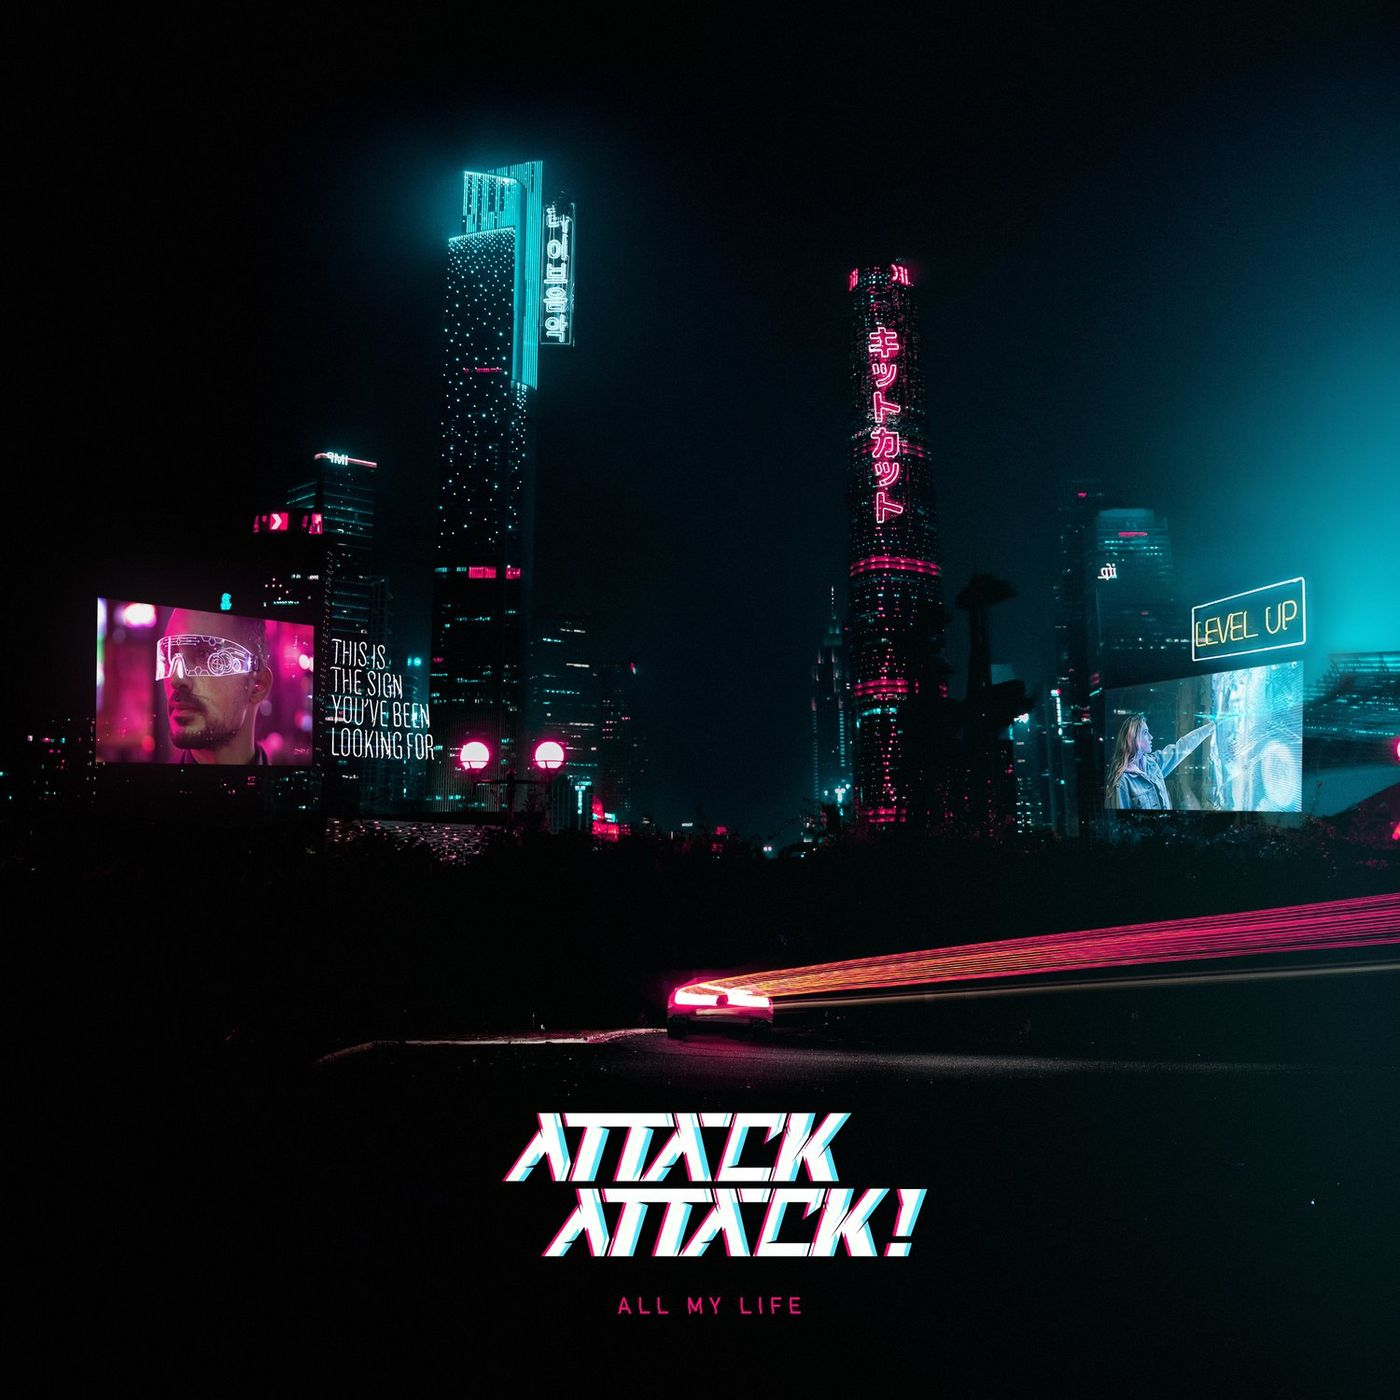 Attack Attack! - All My Life [single] (2020)